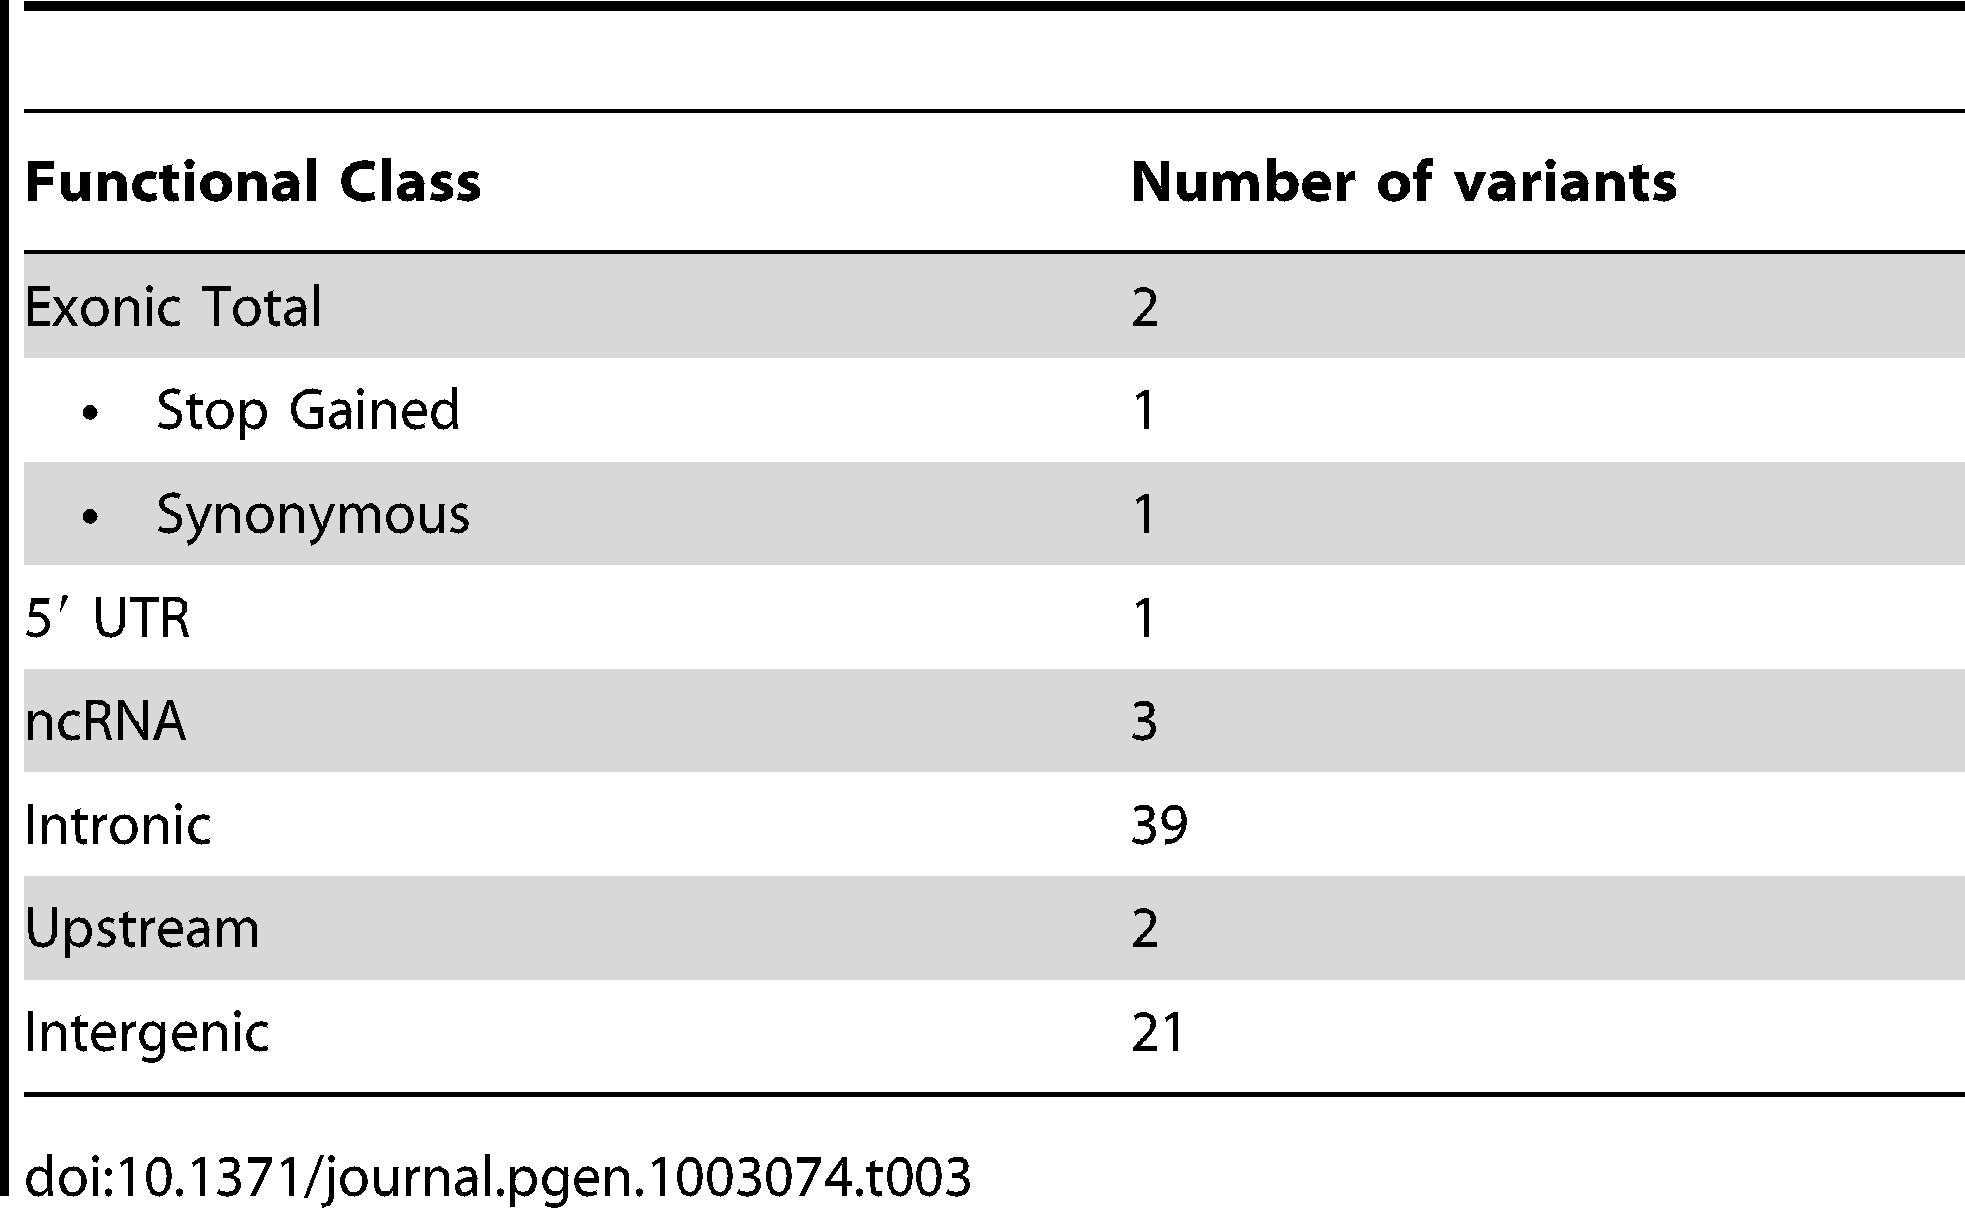 Number of candidate variants per functional class.